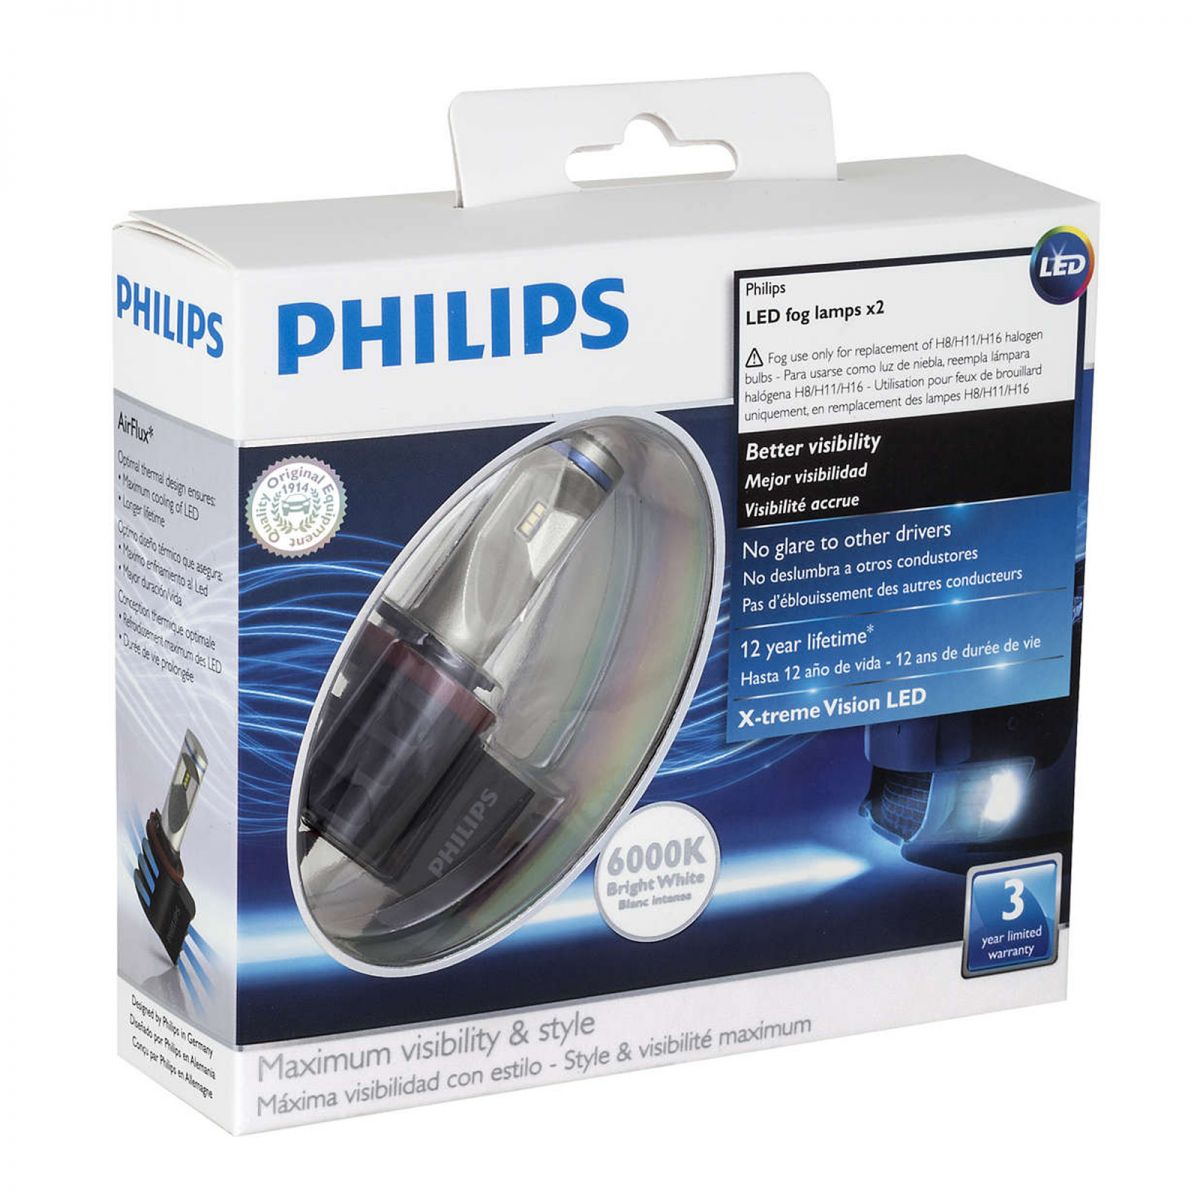 philips 2 ampoules x treme vision led 6000k h11 h8 h16 yakaequiper. Black Bedroom Furniture Sets. Home Design Ideas